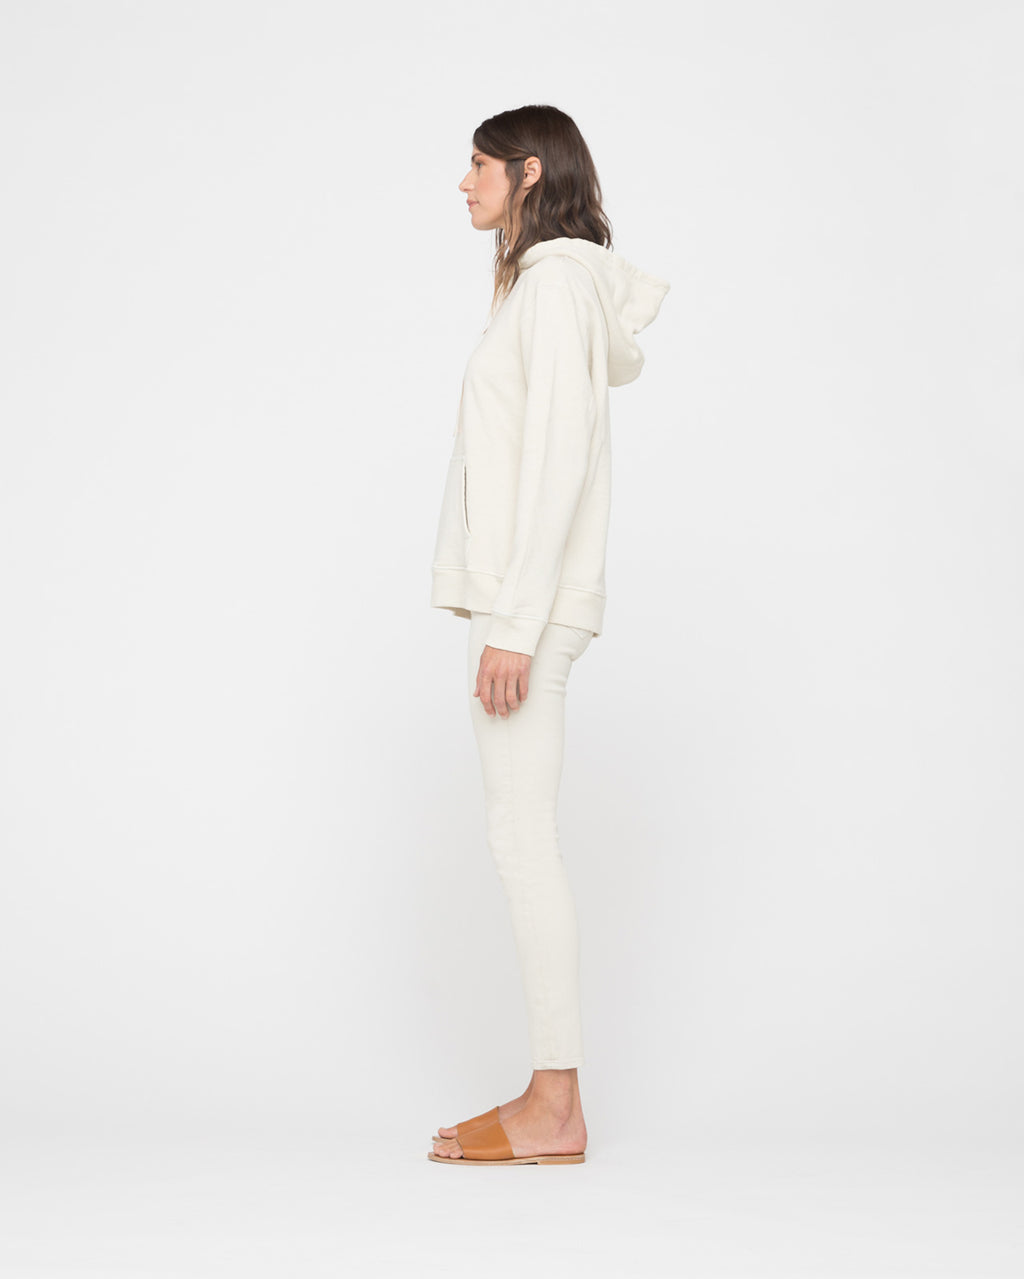 The Mylie Sweatshirt in Almond